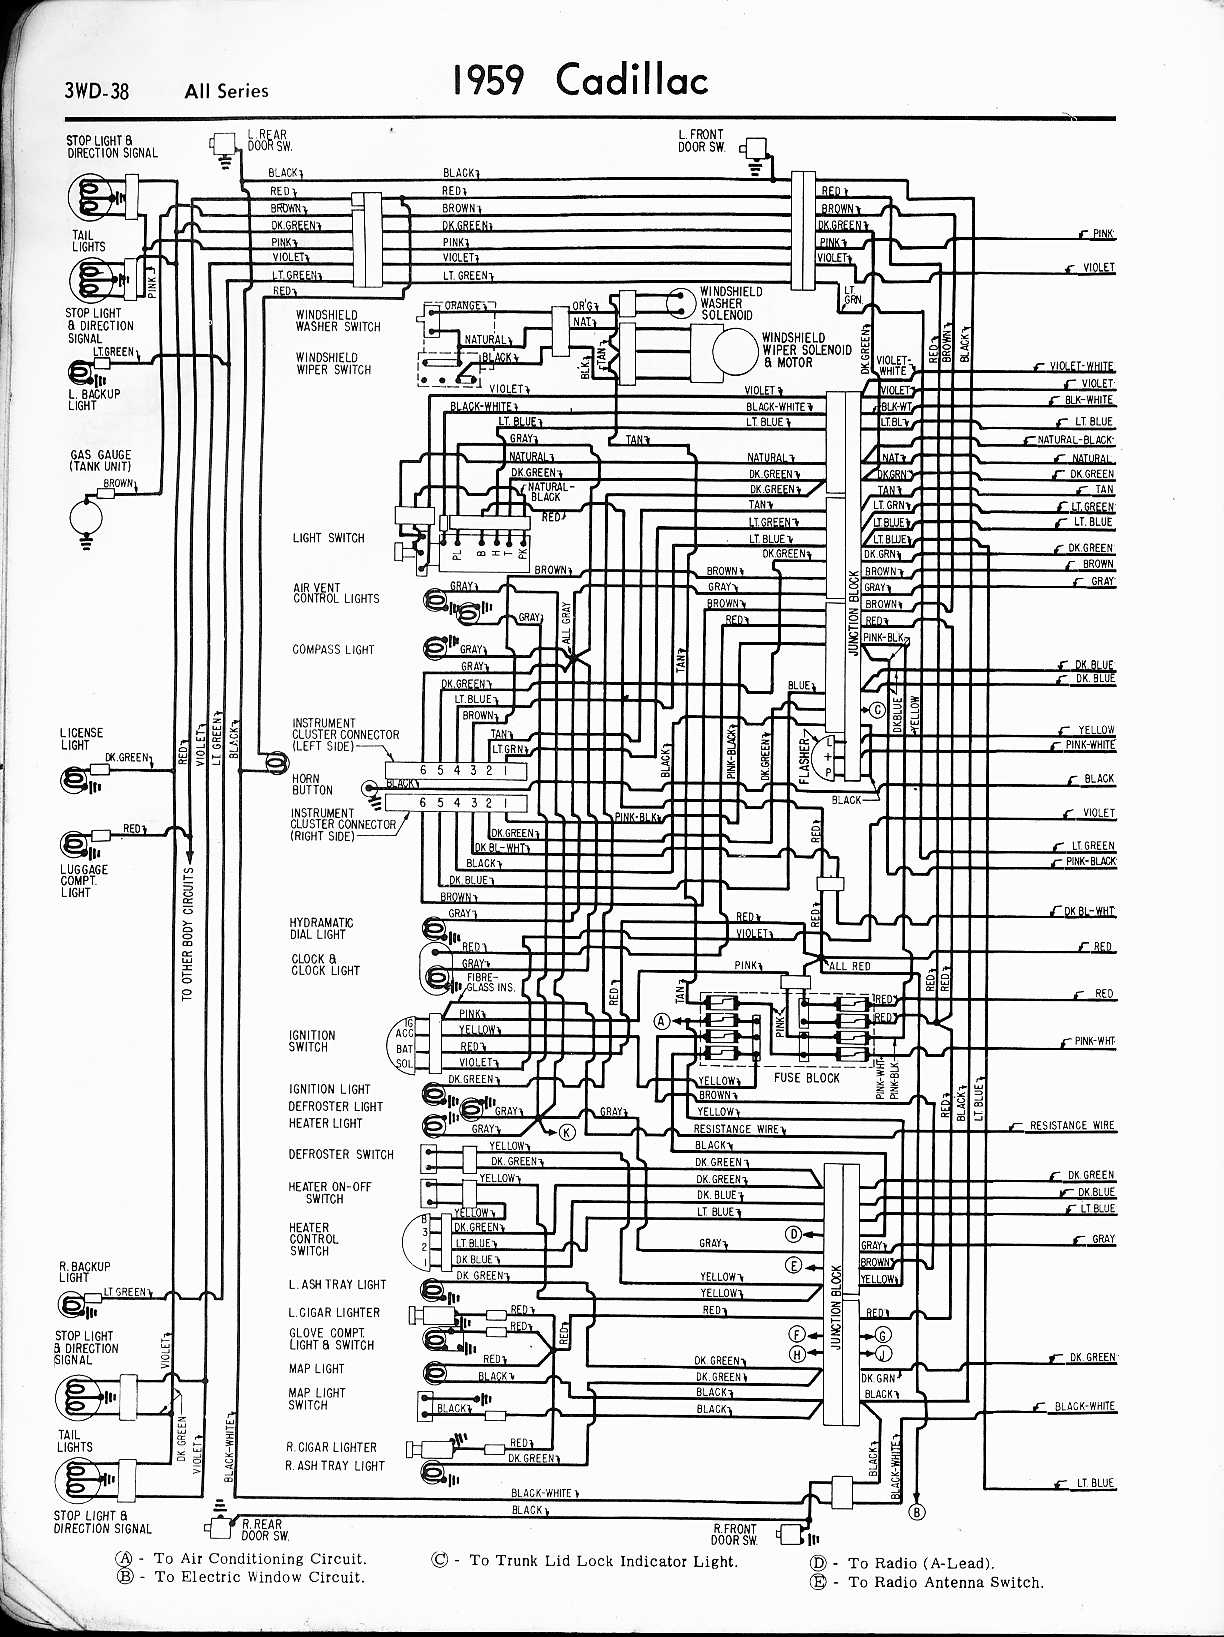 Cadillac Wiring Diagrams 1957 1965 Lead Motor Diagram Free Download Schematic 1959 All Series Left